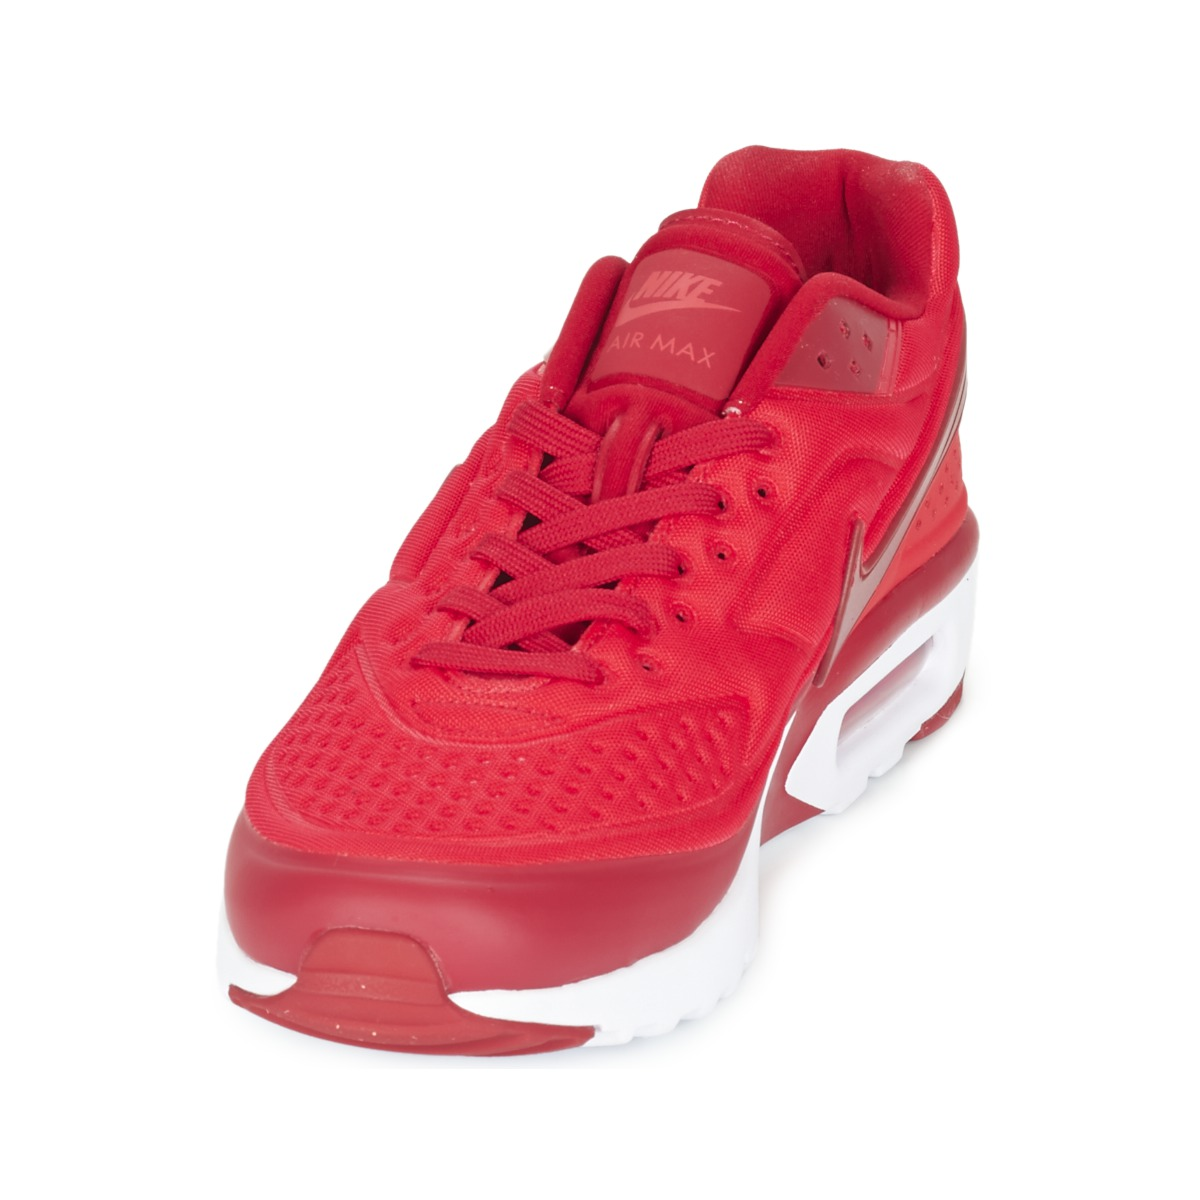 50%OFF Nike AIR MAX BW ULTRA SE Red Shoes Low top trainers